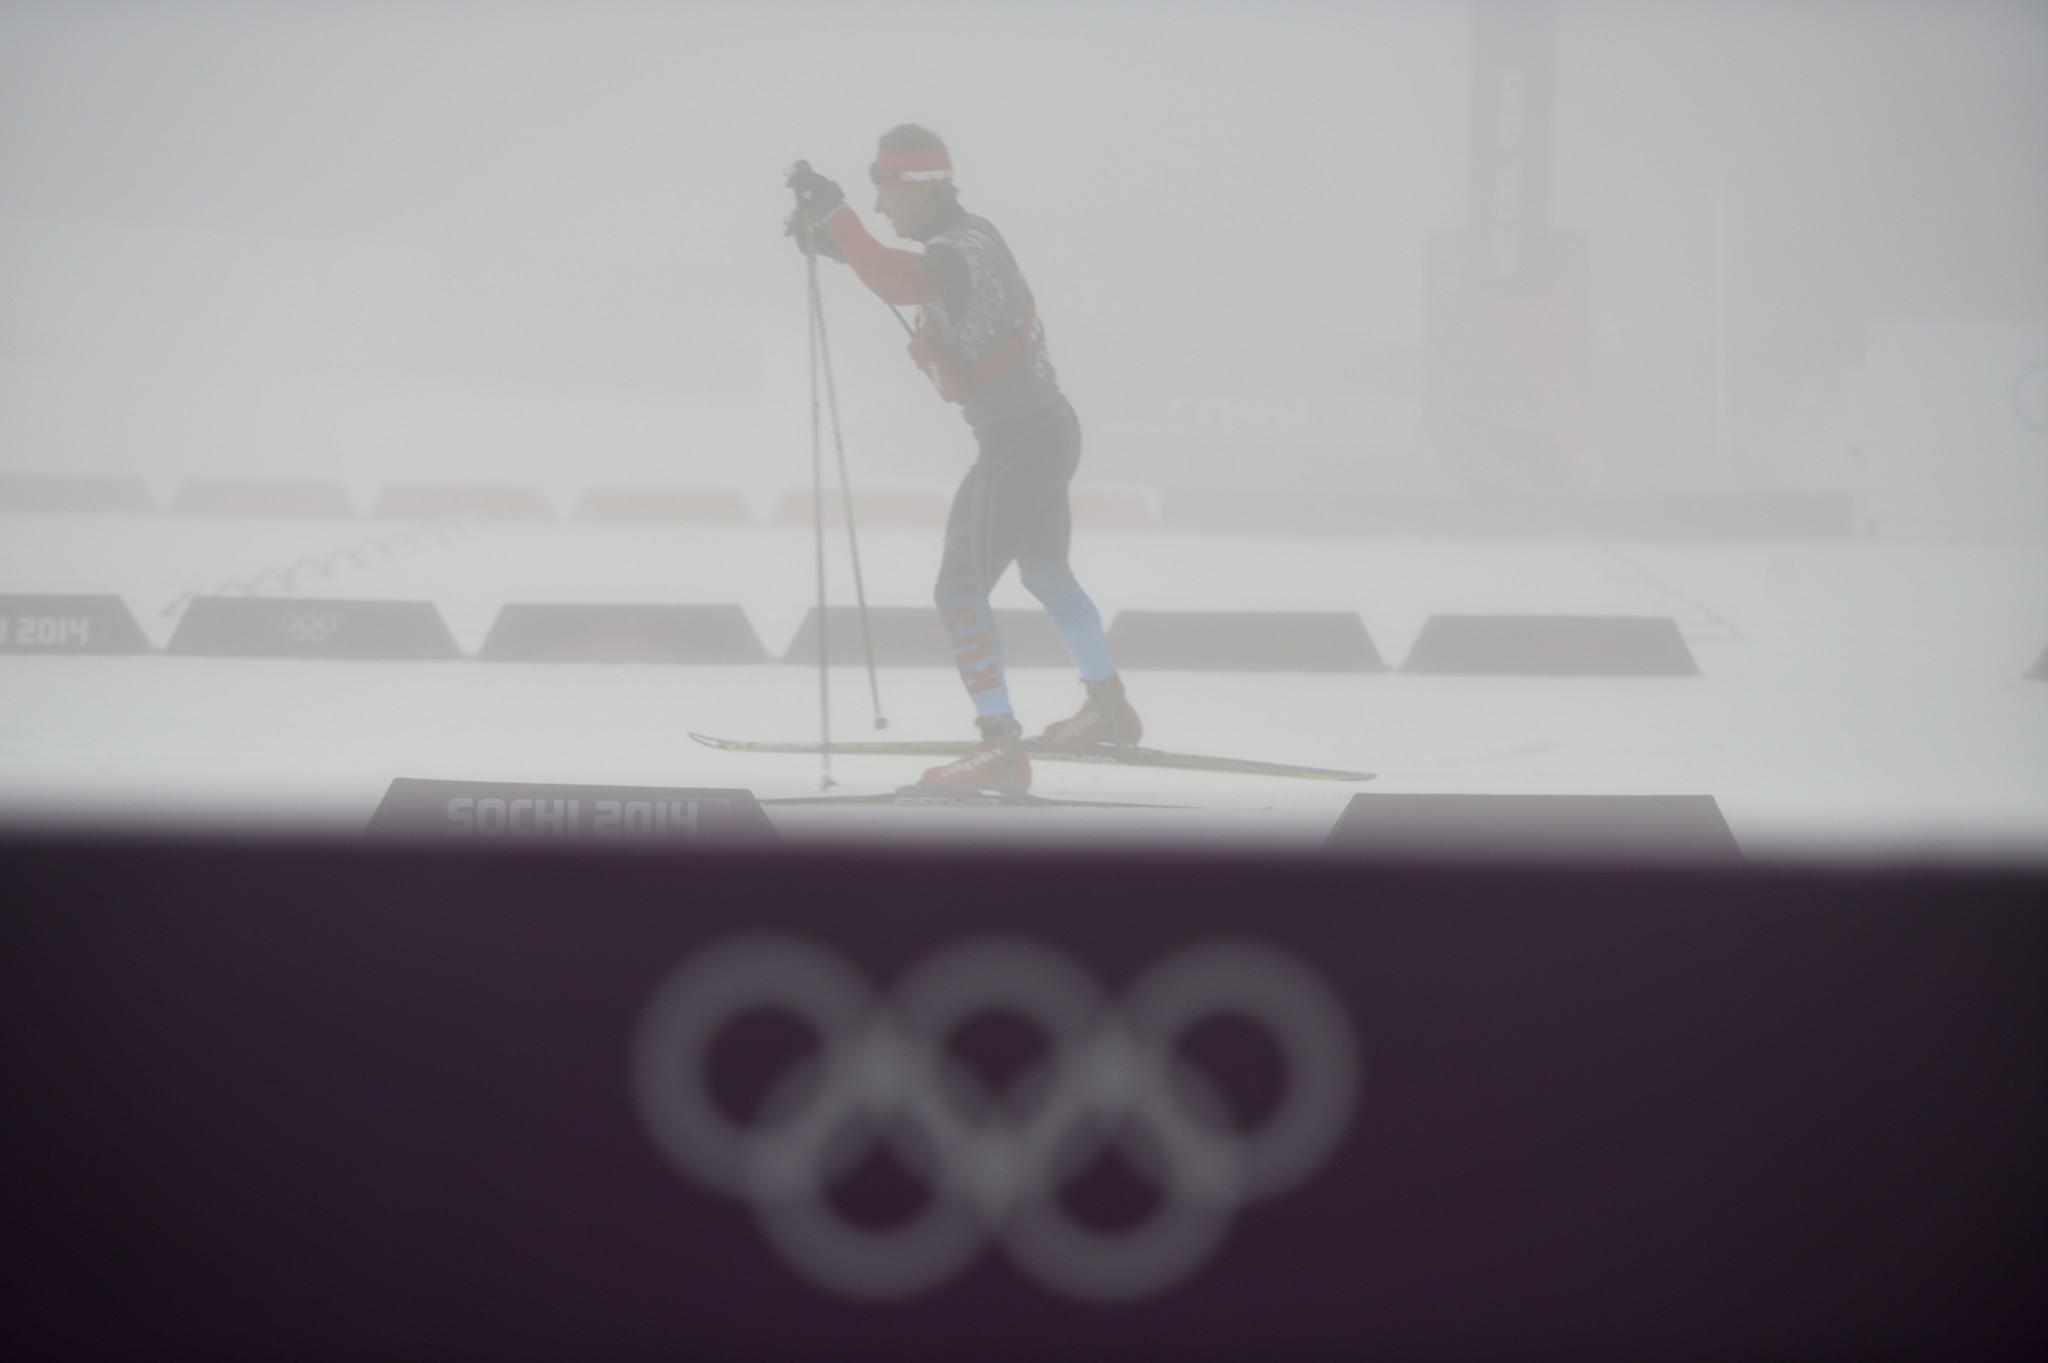 A Russian team member skis as the men's biathlon 15 km Mass Start has been postponed for the second time due to bad weather condition at the Laura Cross-Country Ski and Biathlon Center.